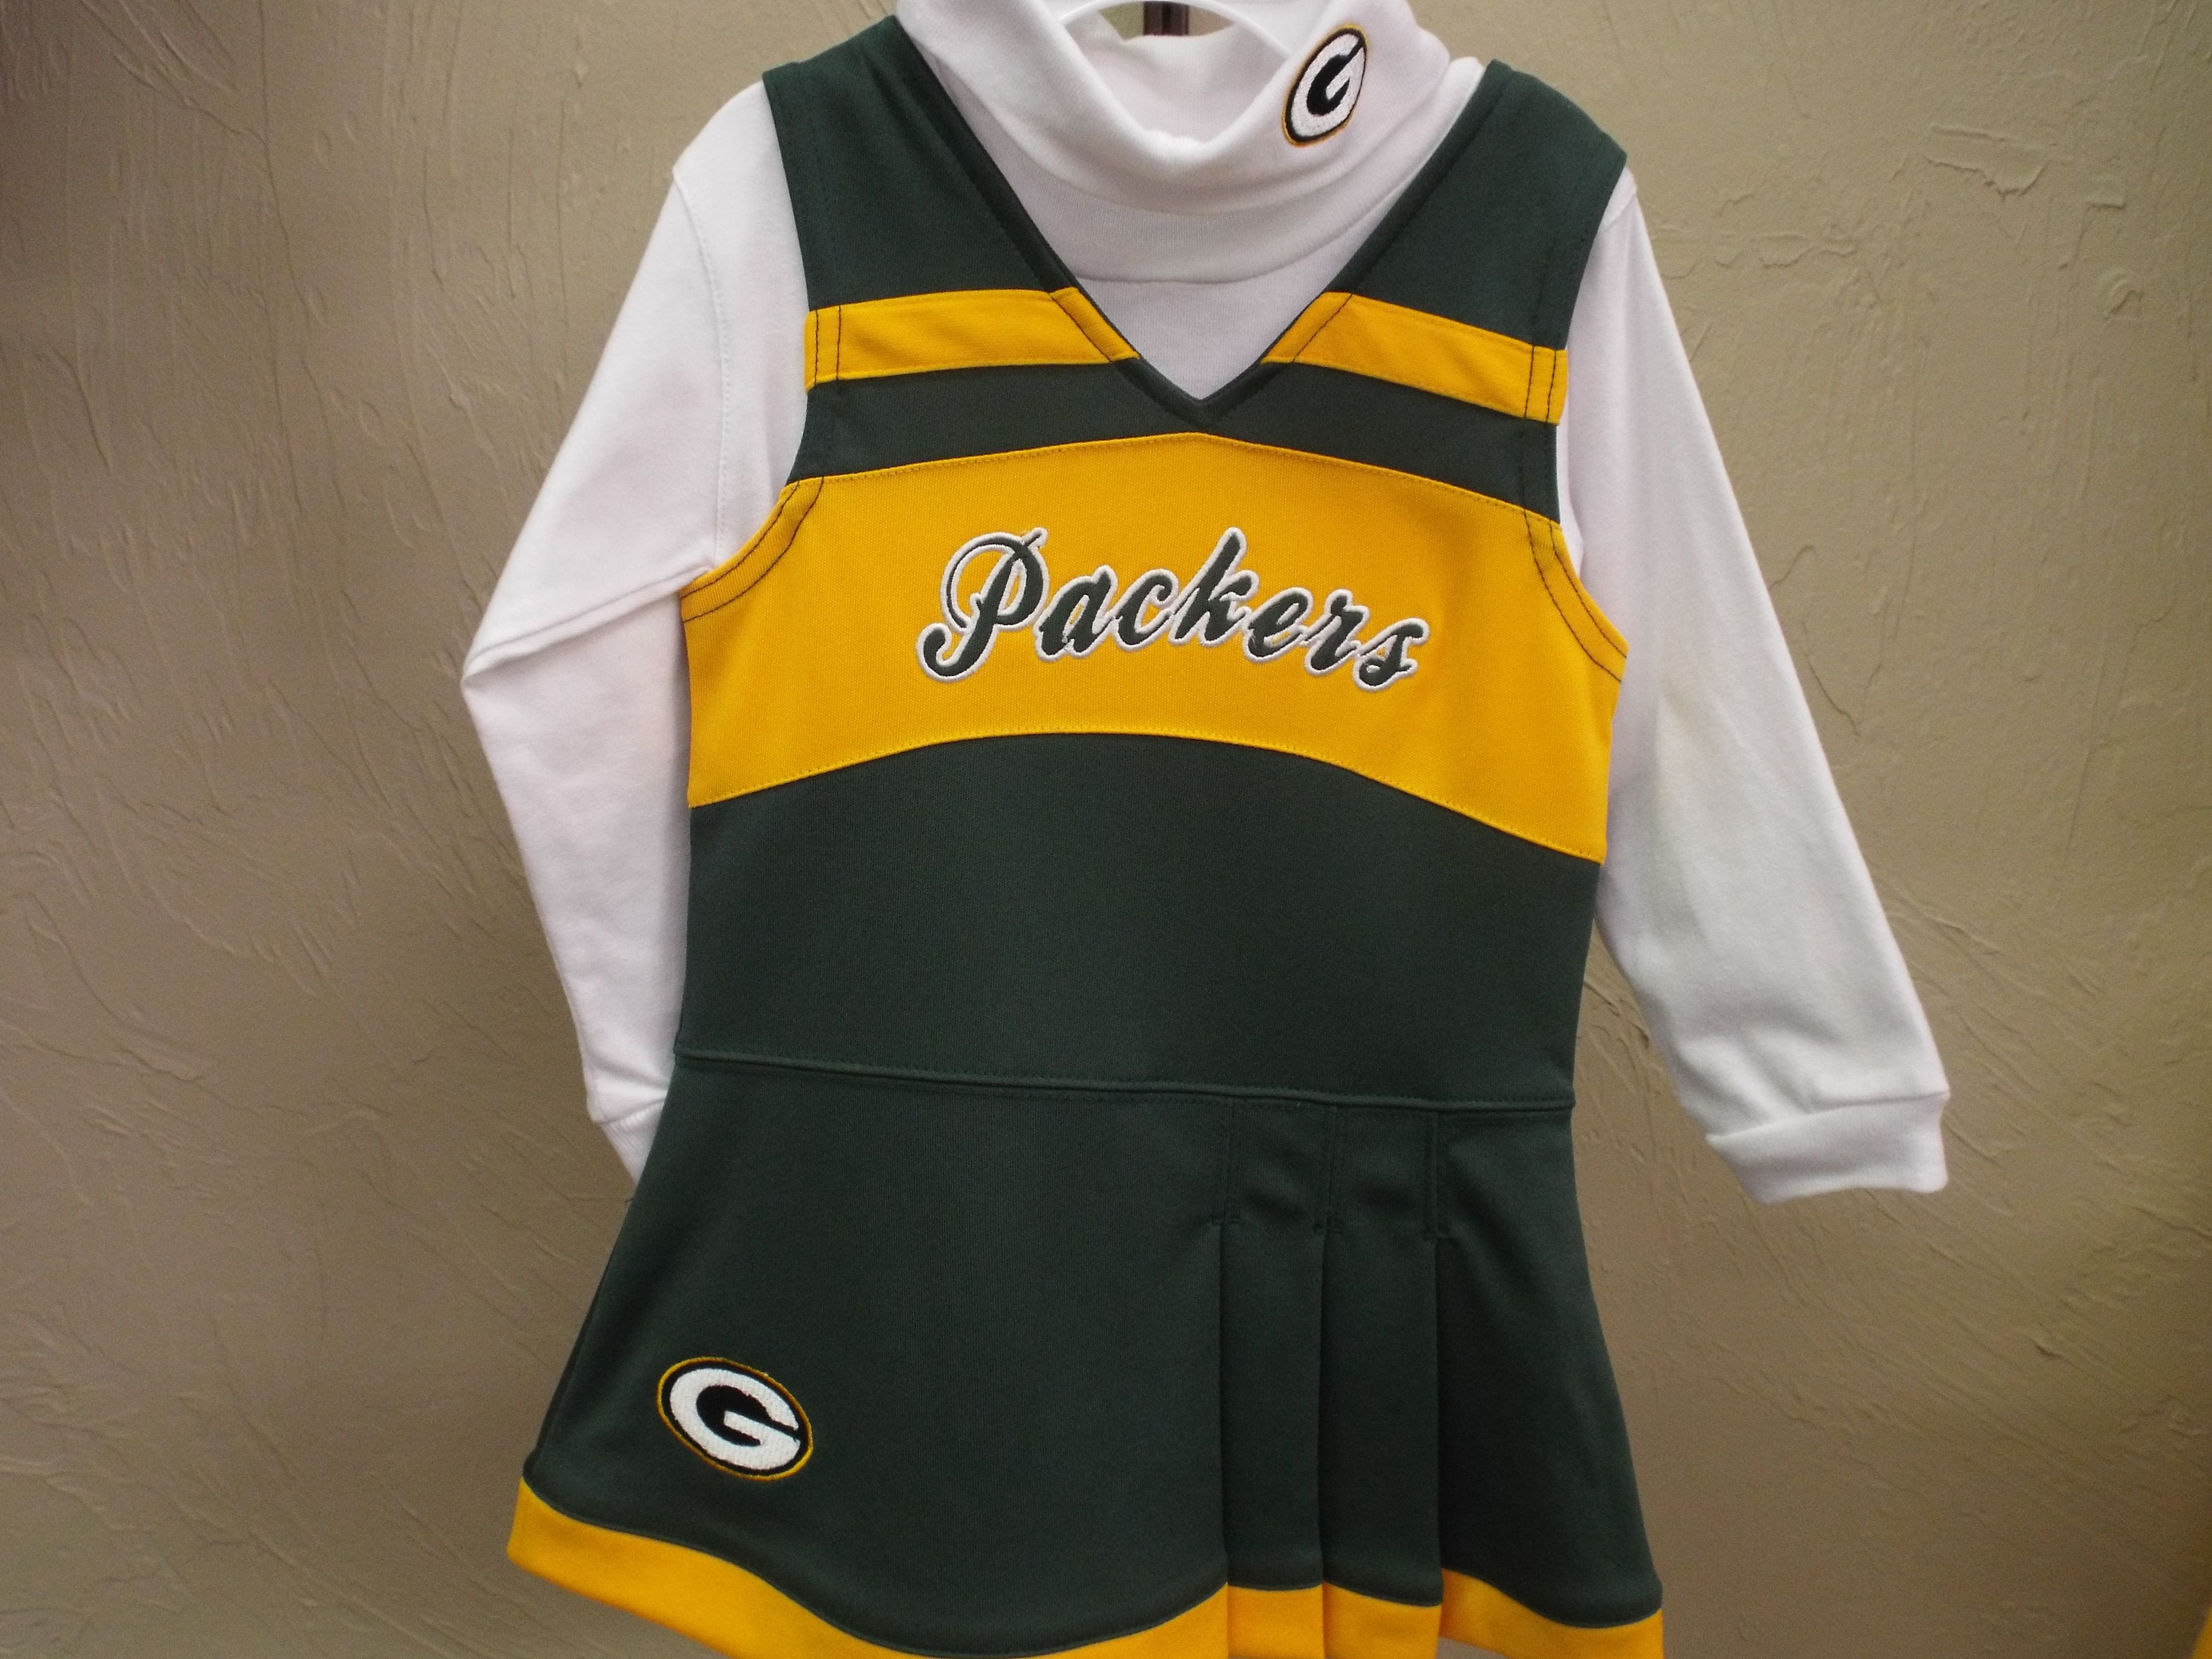 Green Bay Packers Cheerleader Outfit Green Bay Packers Cheerleaders Green Bay Packers Cheerleading Outfits